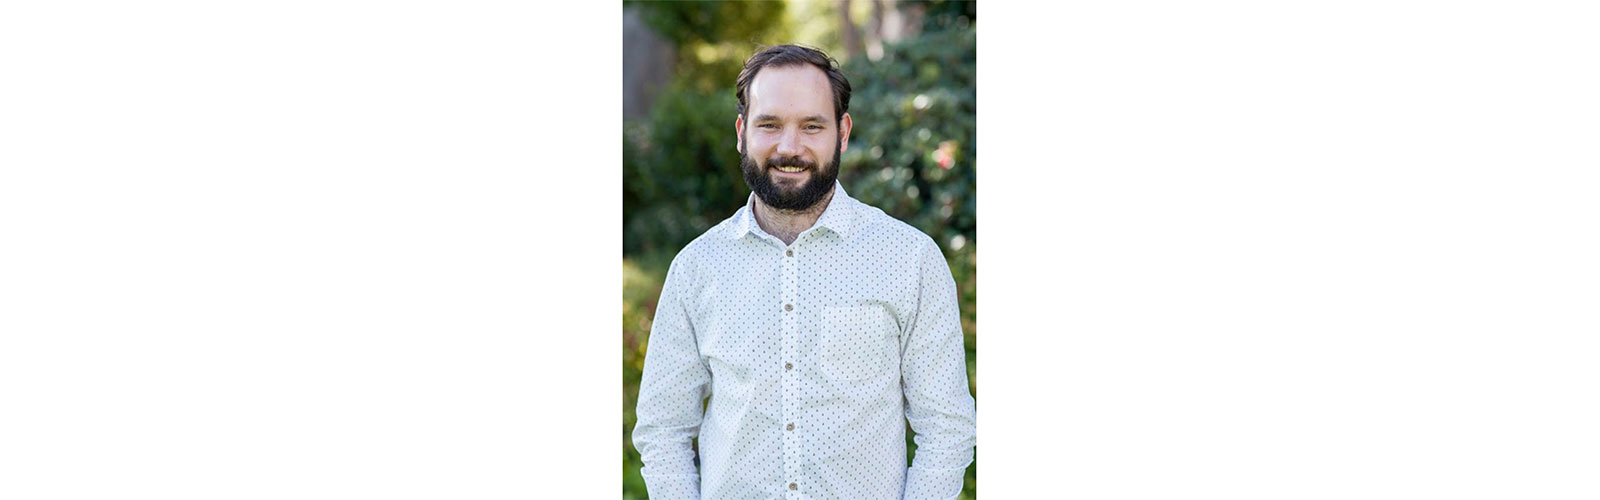 Congratulations to Nic Spaull for receiving highest post-doctoral research rating